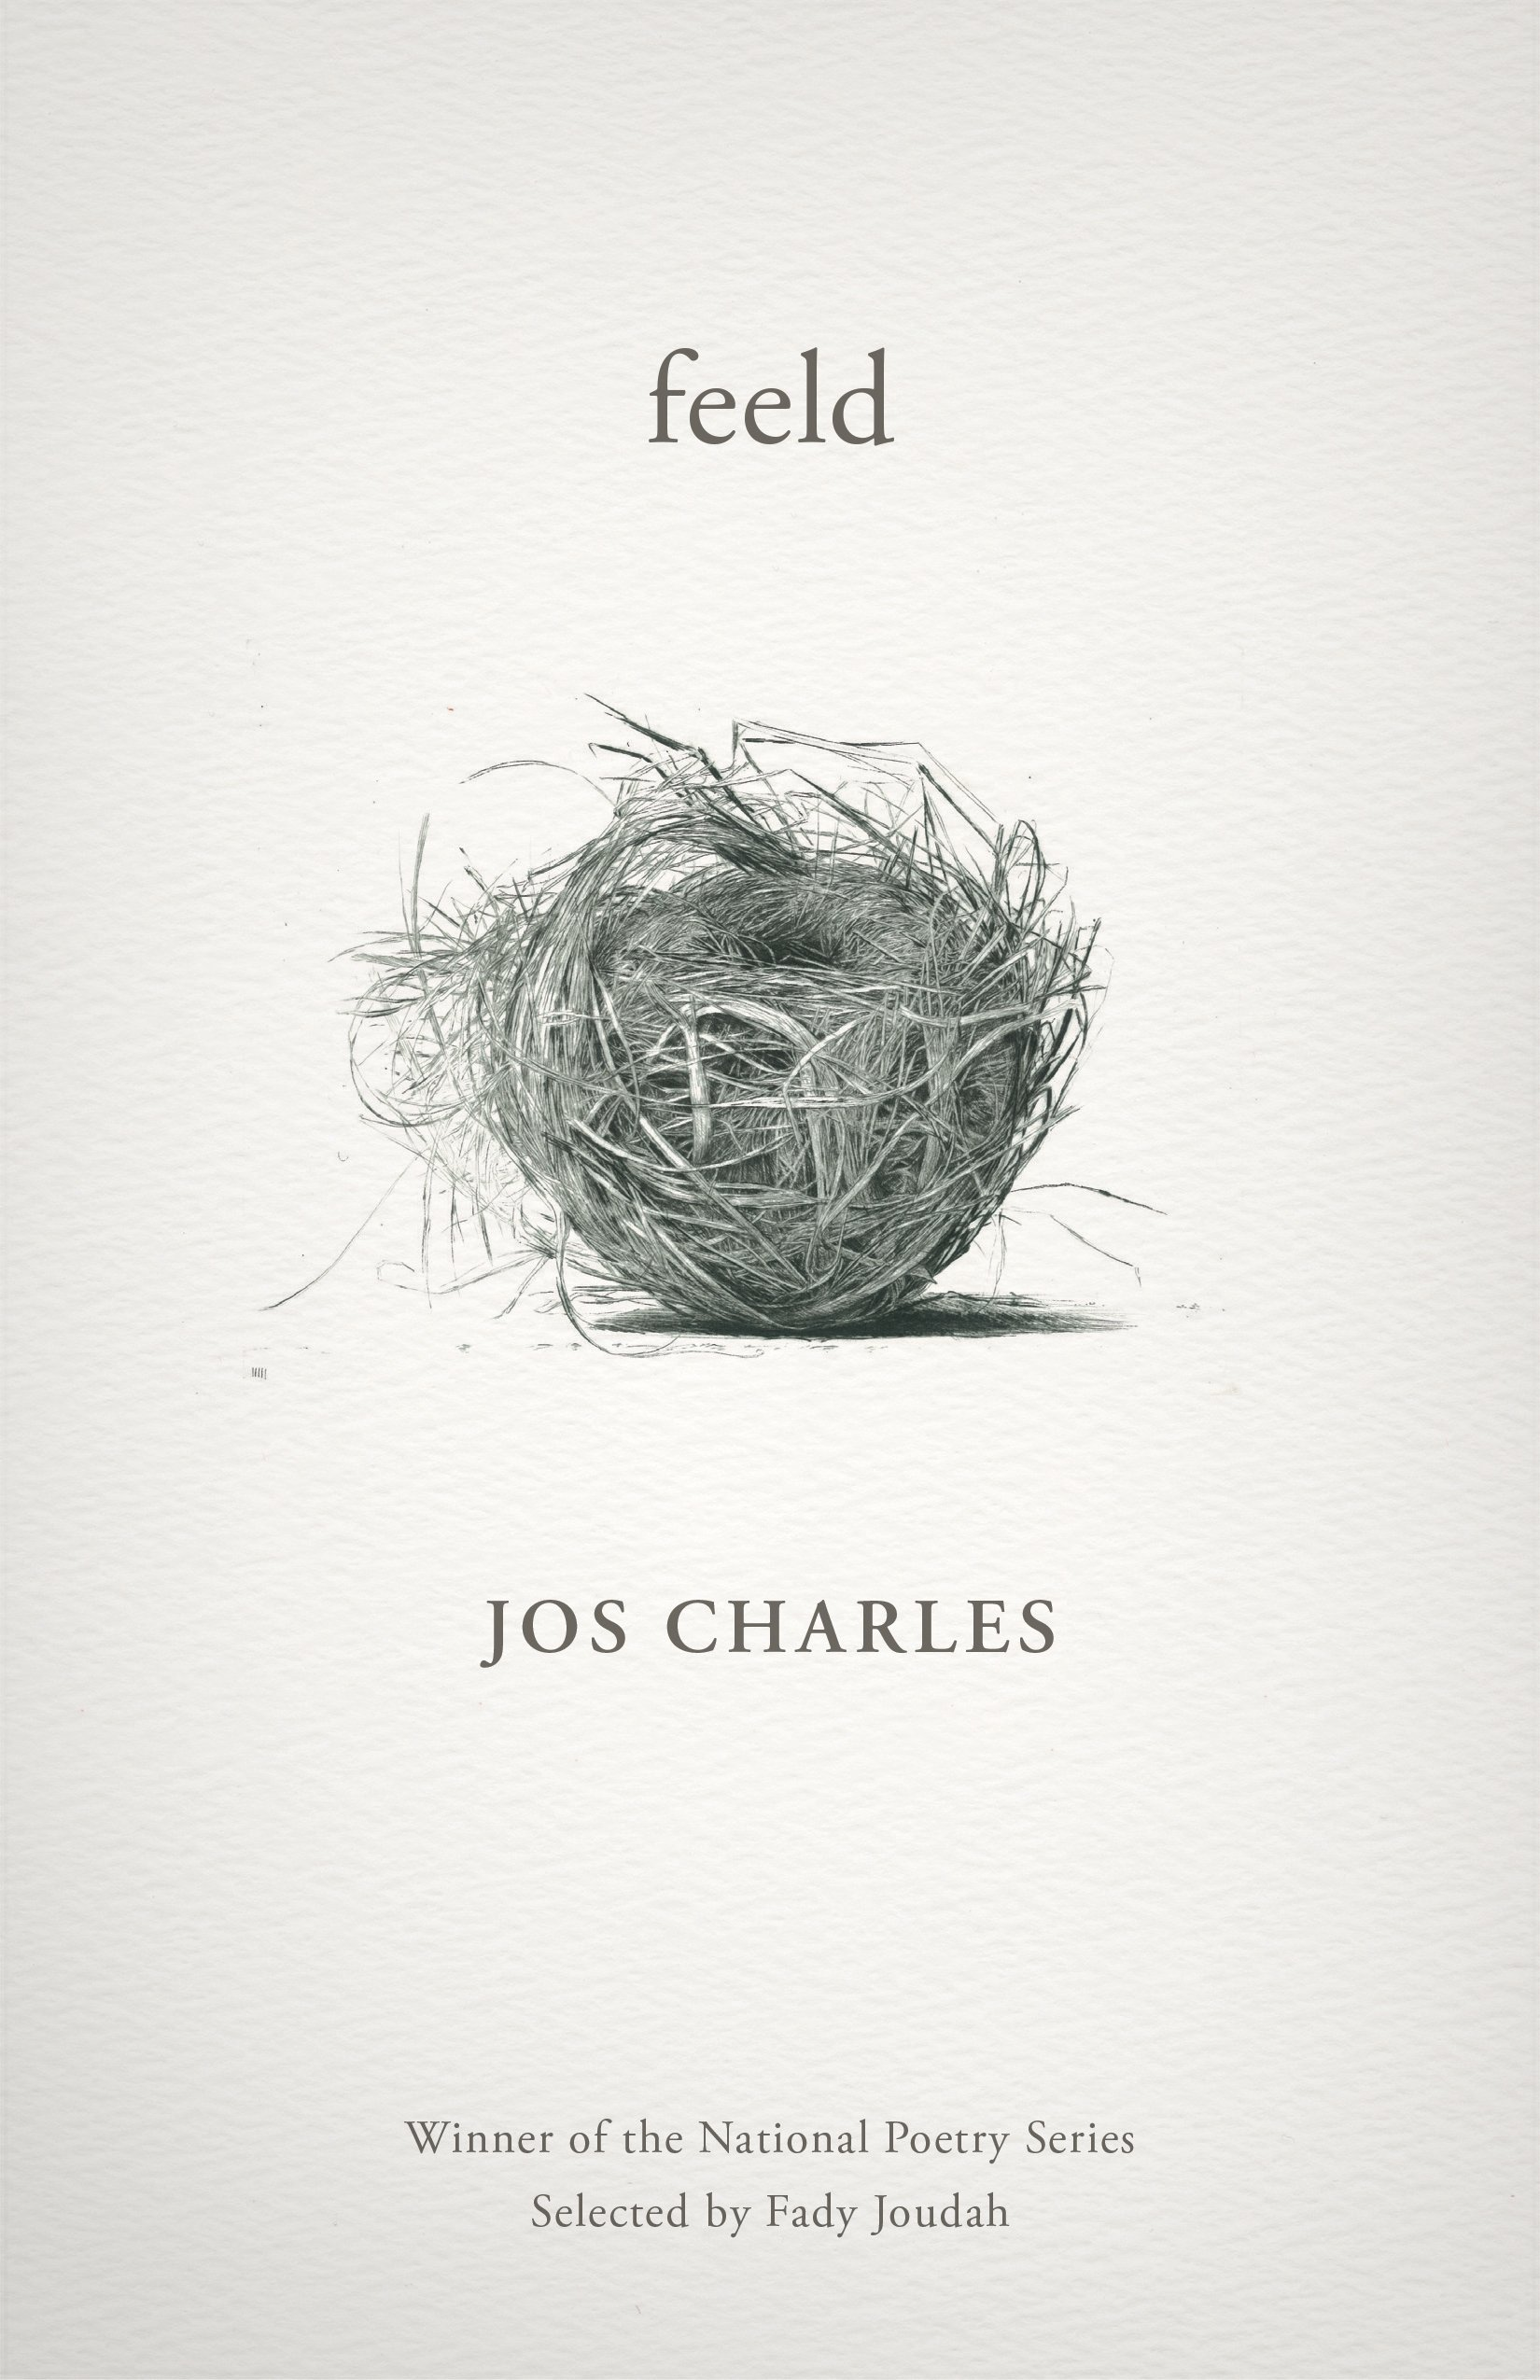 Image result for feeld jos charles